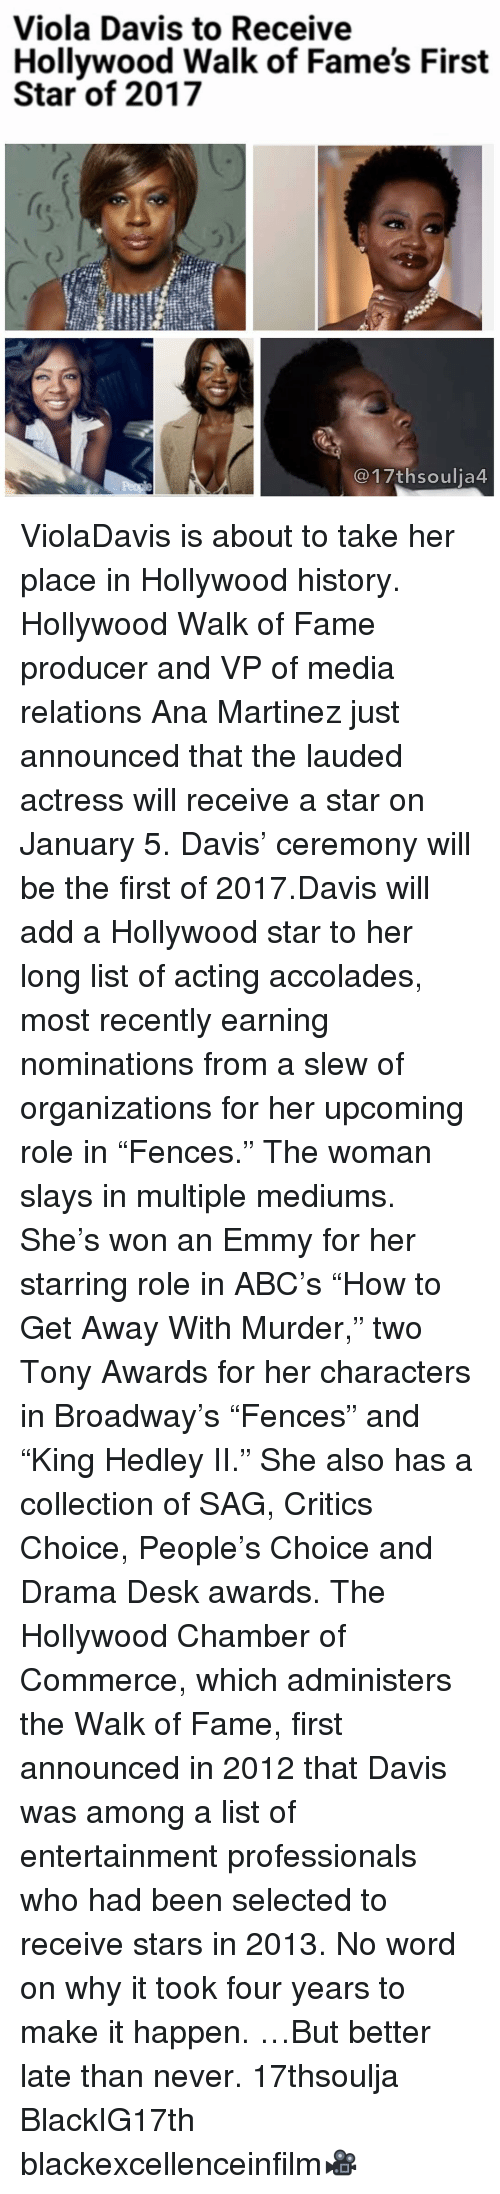 "Emmie: Viola Davis to Receive  Hollywood Walk of Fame's First  Star of 2017  17th soulia4 ViolaDavis is about to take her place in Hollywood history. Hollywood Walk of Fame producer and VP of media relations Ana Martinez just announced that the lauded actress will receive a star on January 5. Davis' ceremony will be the first of 2017.Davis will add a Hollywood star to her long list of acting accolades, most recently earning nominations from a slew of organizations for her upcoming role in ""Fences."" The woman slays in multiple mediums. She's won an Emmy for her starring role in ABC's ""How to Get Away With Murder,"" two Tony Awards for her characters in Broadway's ""Fences"" and ""King Hedley II."" She also has a collection of SAG, Critics Choice, People's Choice and Drama Desk awards. The Hollywood Chamber of Commerce, which administers the Walk of Fame, first announced in 2012 that Davis was among a list of entertainment professionals who had been selected to receive stars in 2013. No word on why it took four years to make it happen. …But better late than never. 17thsoulja BlackIG17th blackexcellenceinfilm🎥"